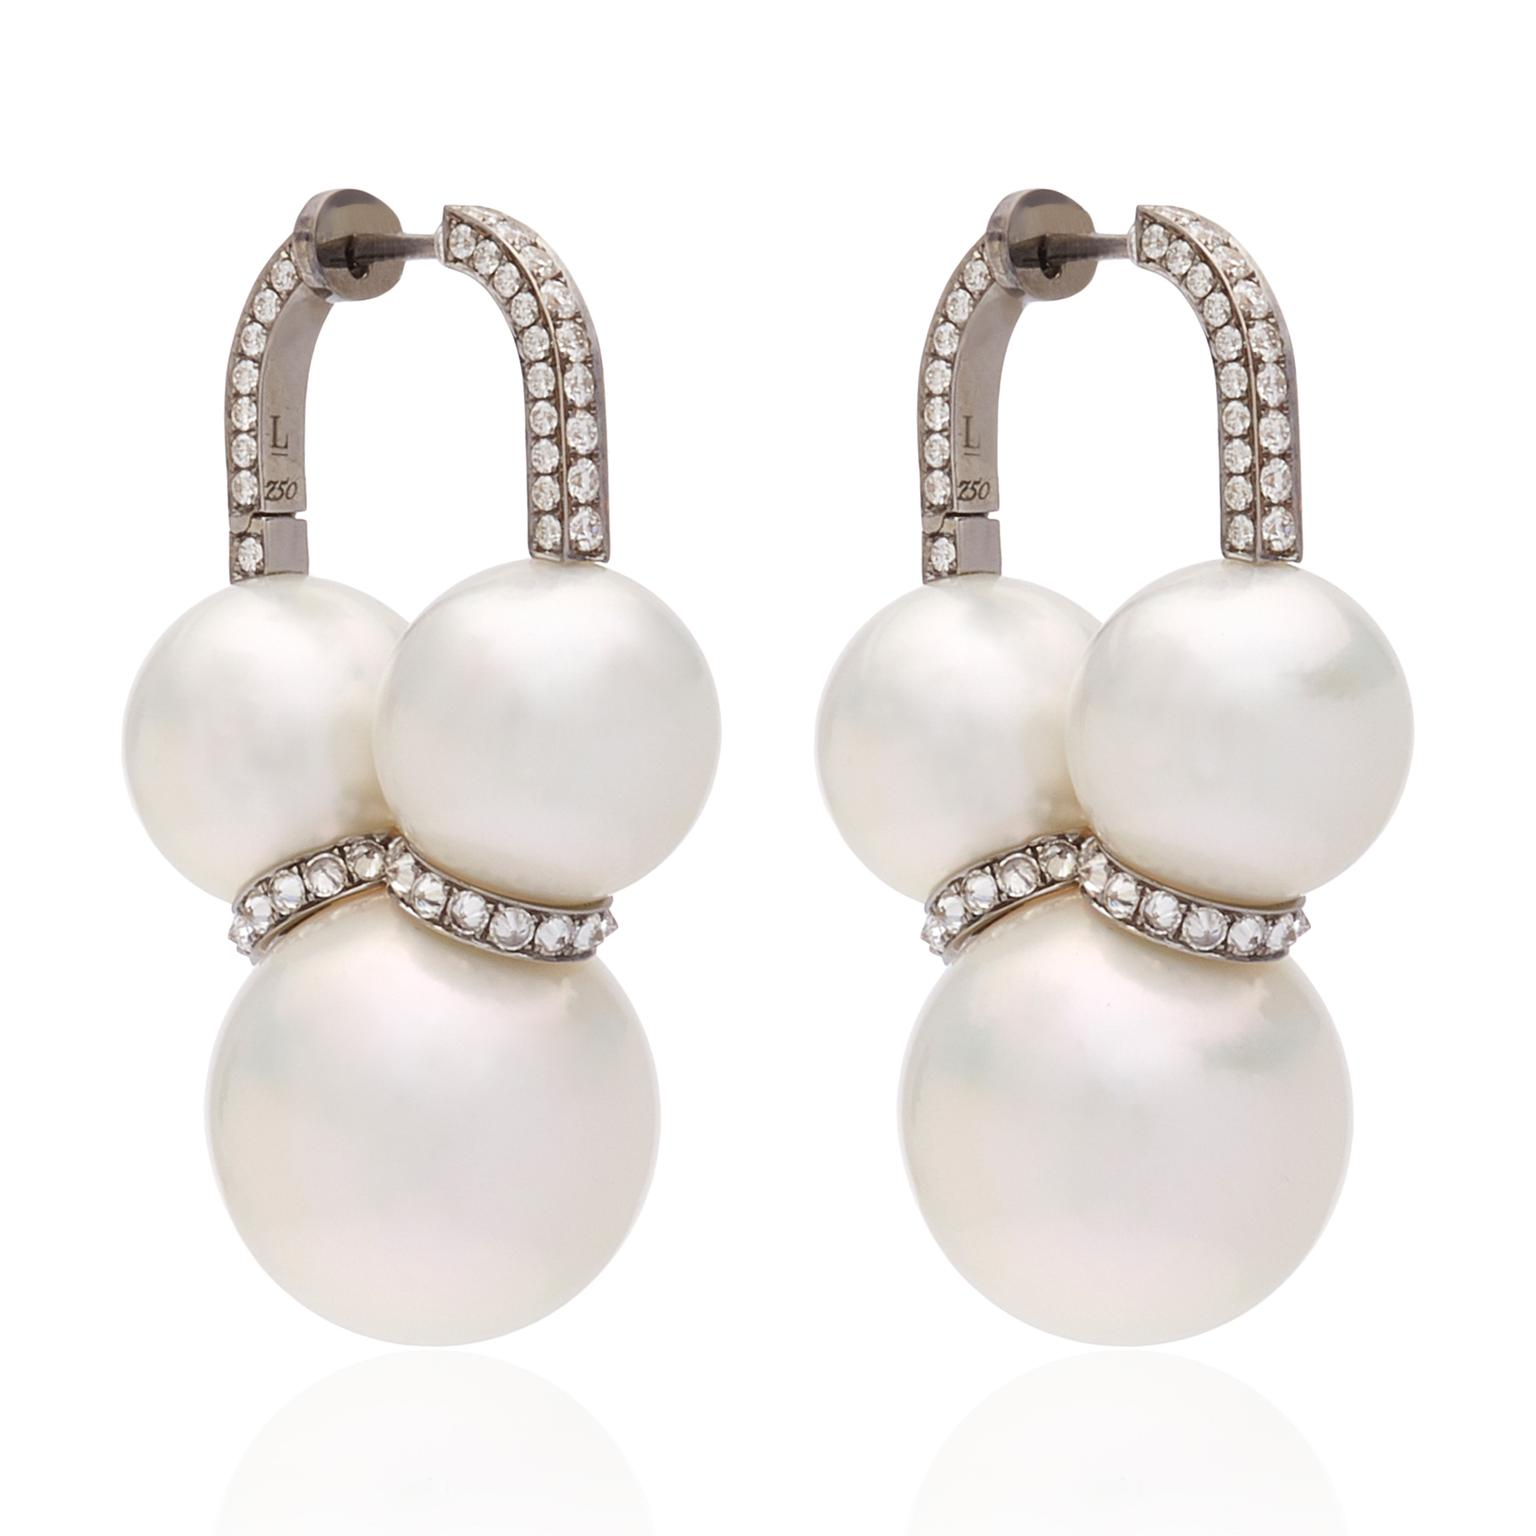 Mr Lieou pearls earrings